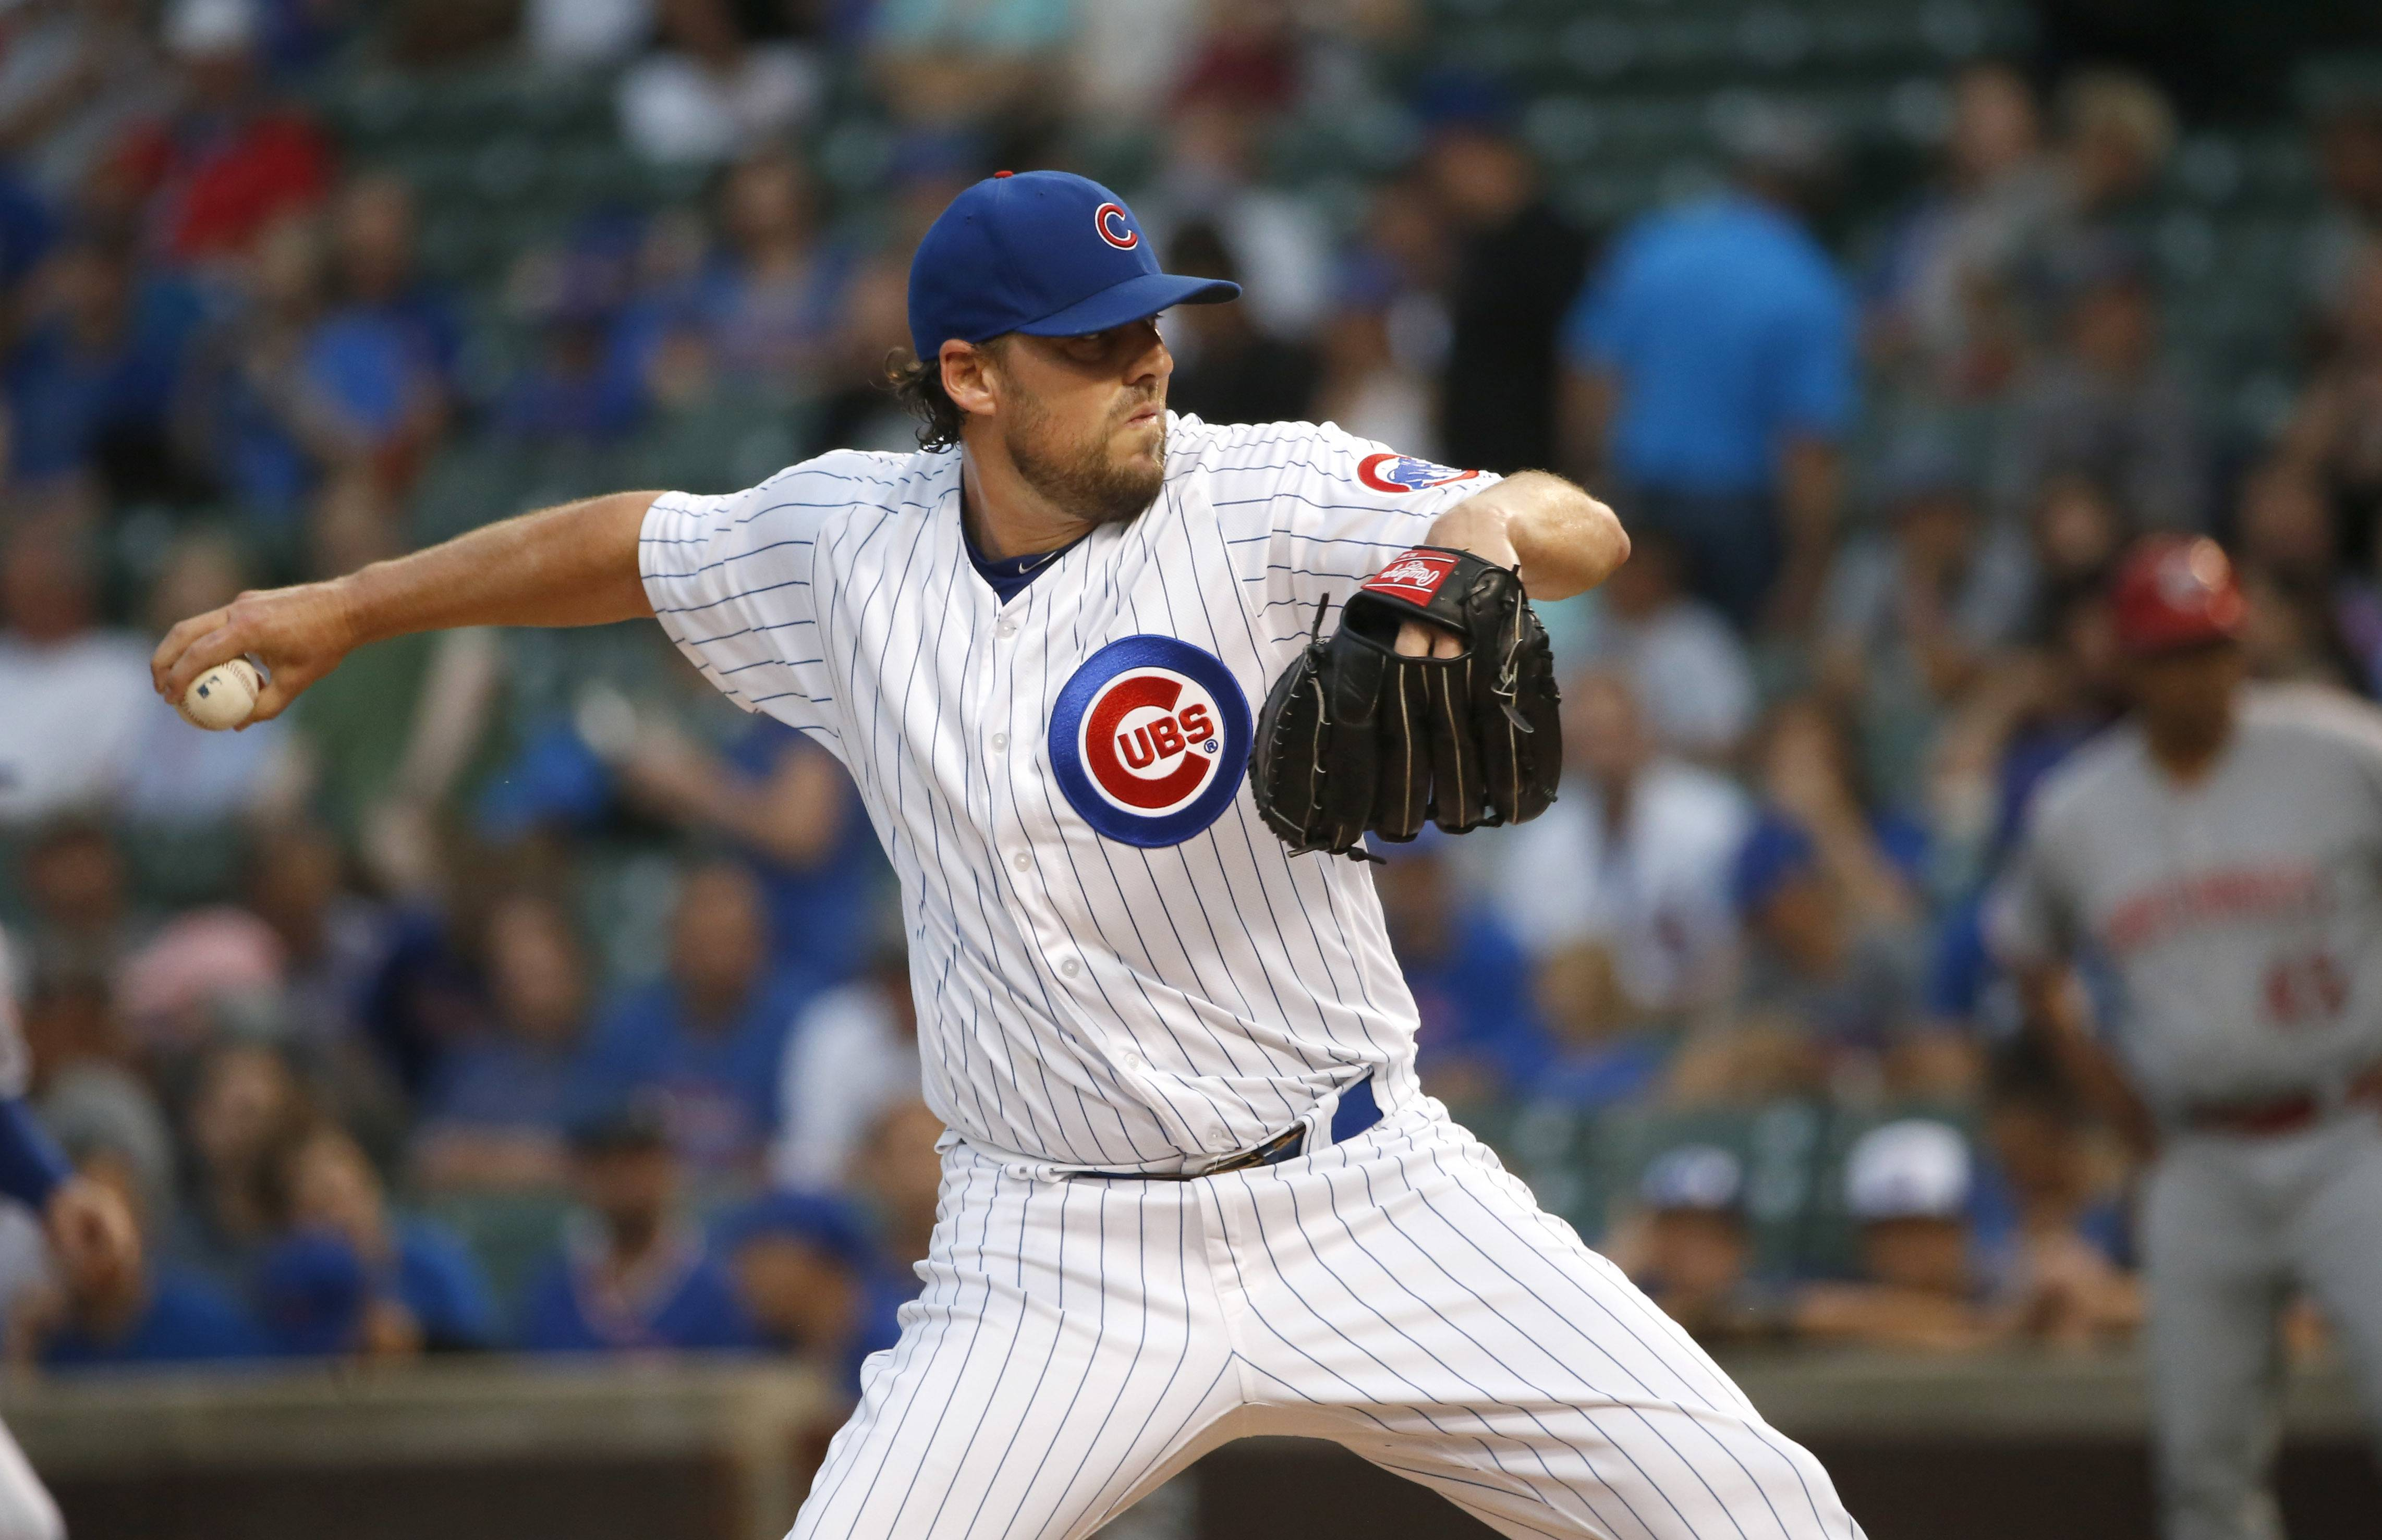 Chicago Cubs starting pitcher John Lackey delivers during the first inning of a baseball game against the Cincinnati Reds Wednesday, Aug. 16, 2017, in Chicago.